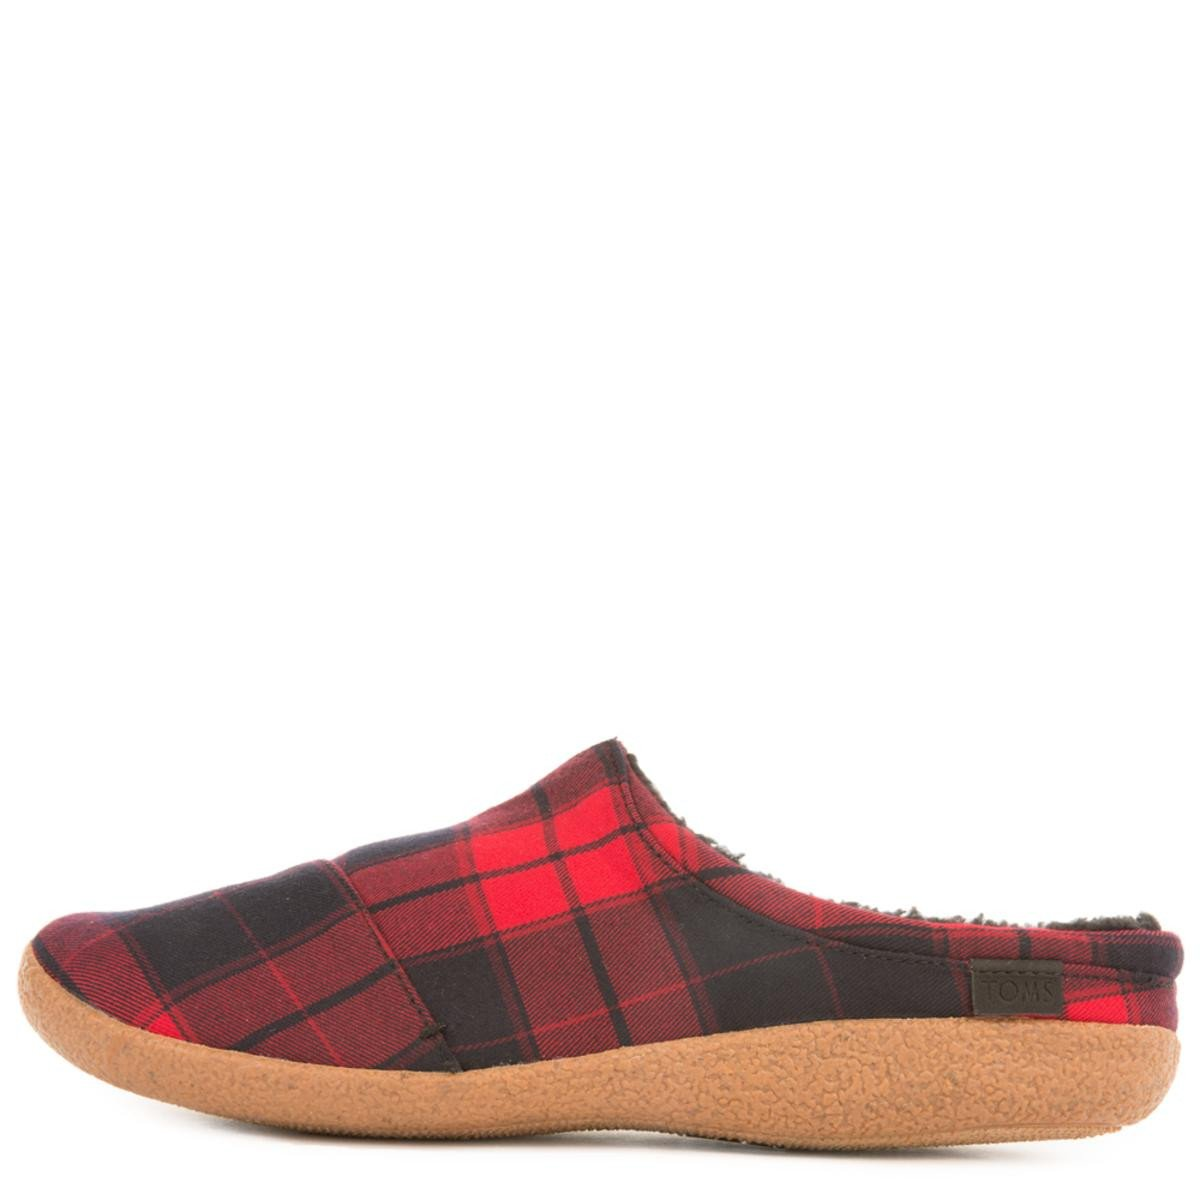 Toms for Men: Berkeley Red Plaid Slippers